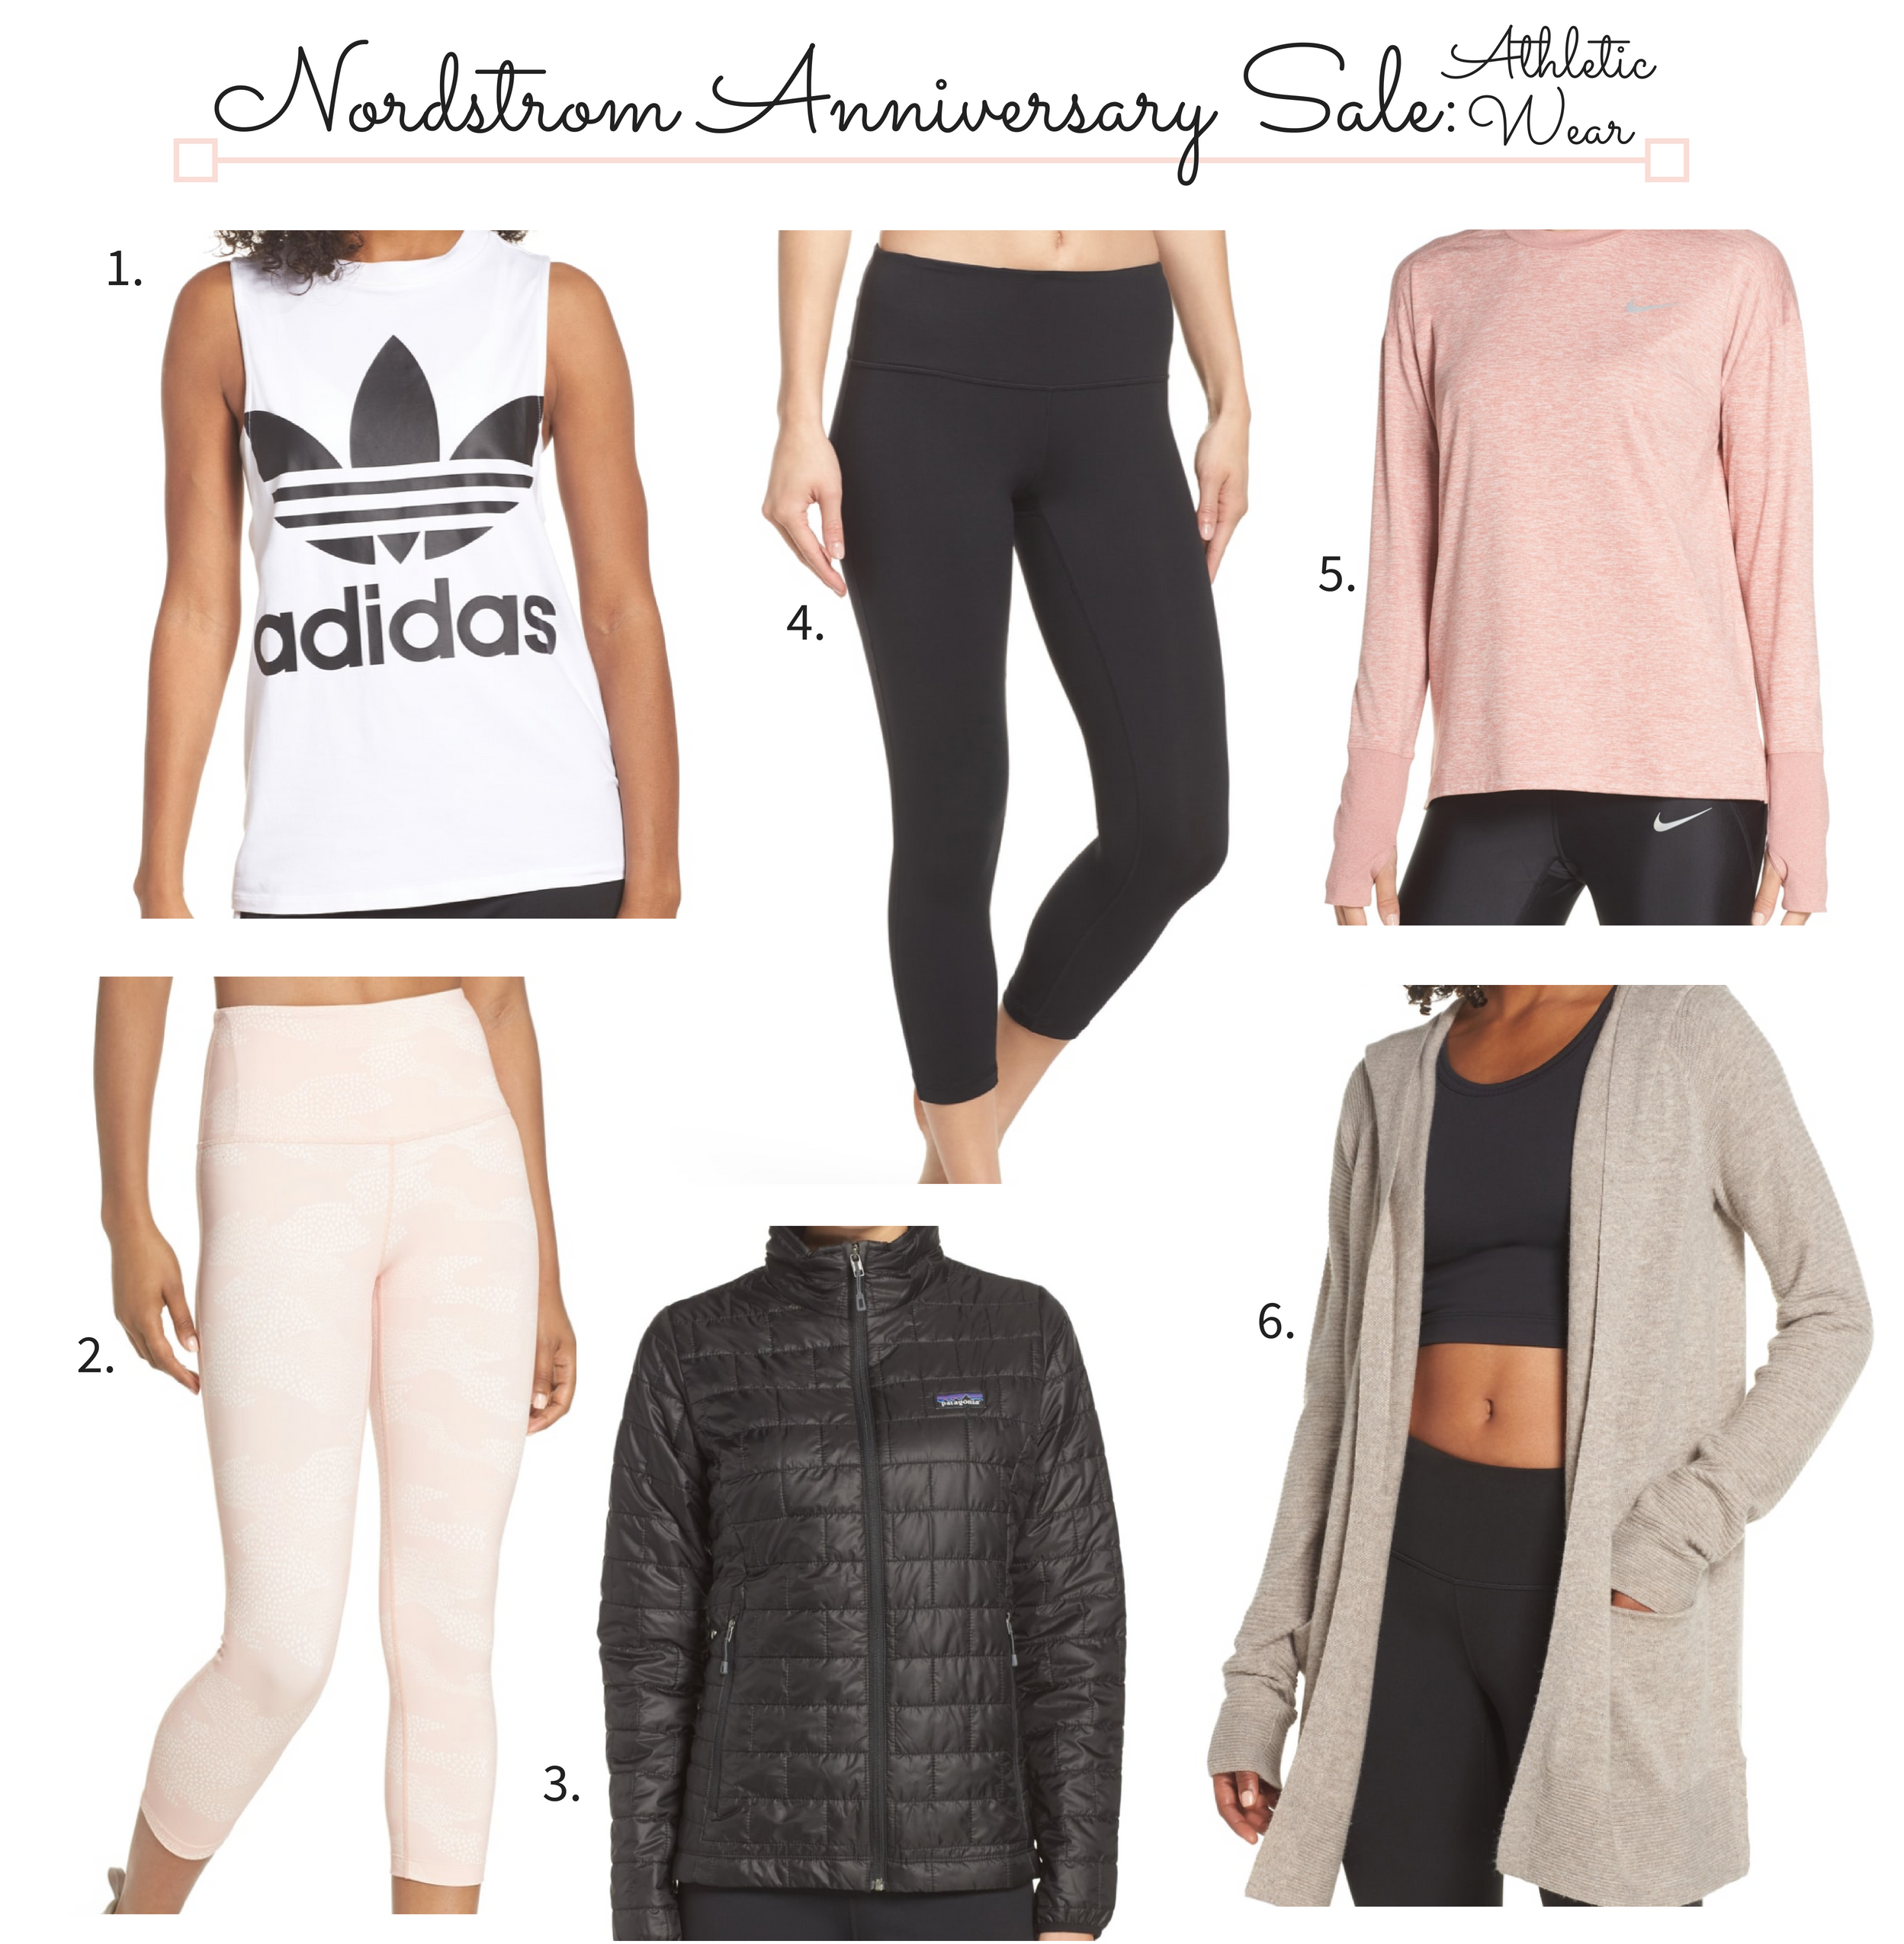 Nordstrom Anniversary Sale 2018 Athletic Wear